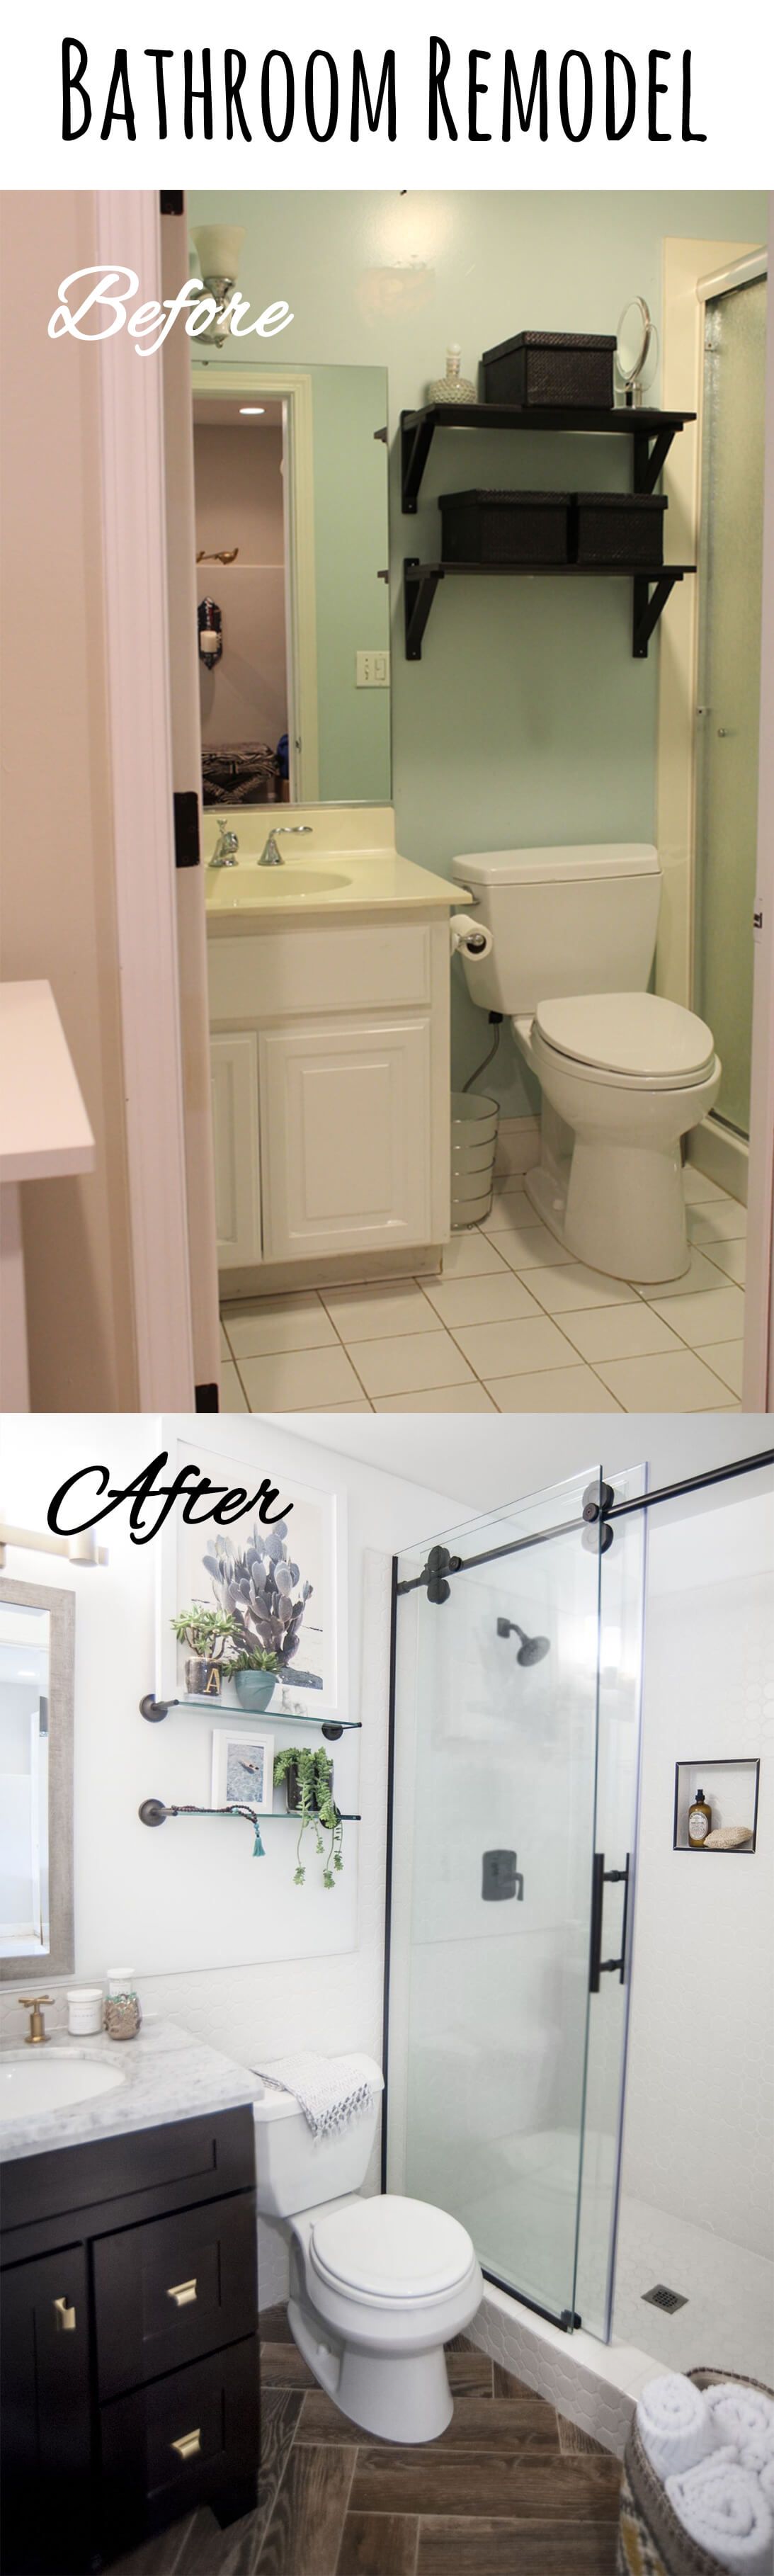 New Quick Fix Bathroom Ideas